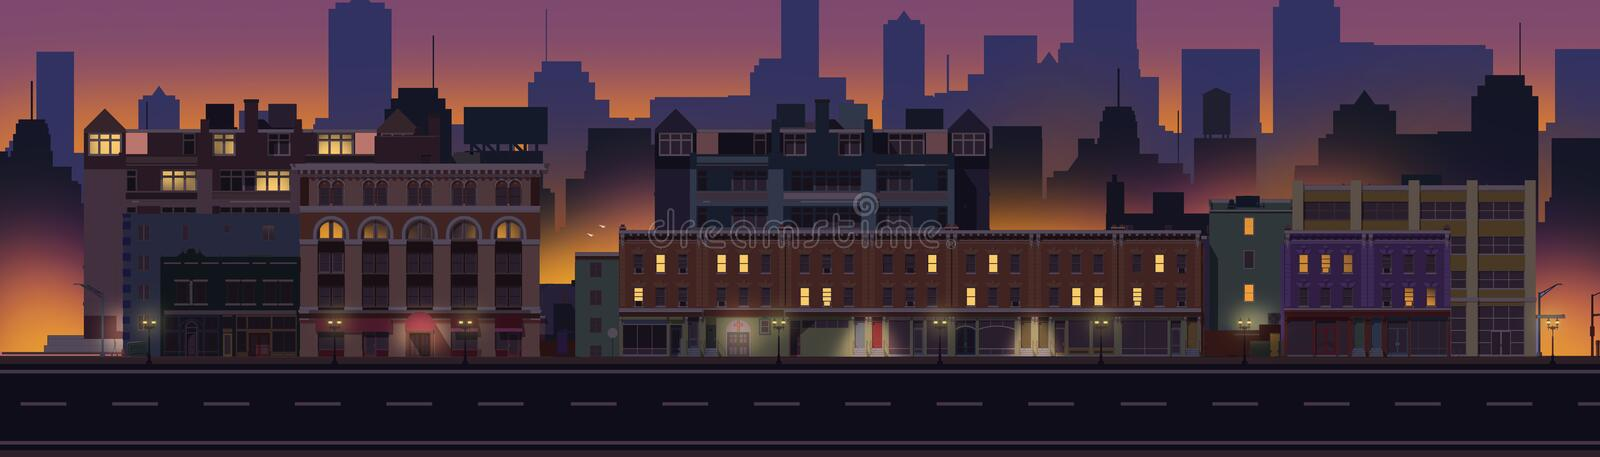 2D Illustrated City Block at Night. A 2d illustration of a city block at time. We see various stores and buildings, the streets are illuminated with lights. The stock illustration